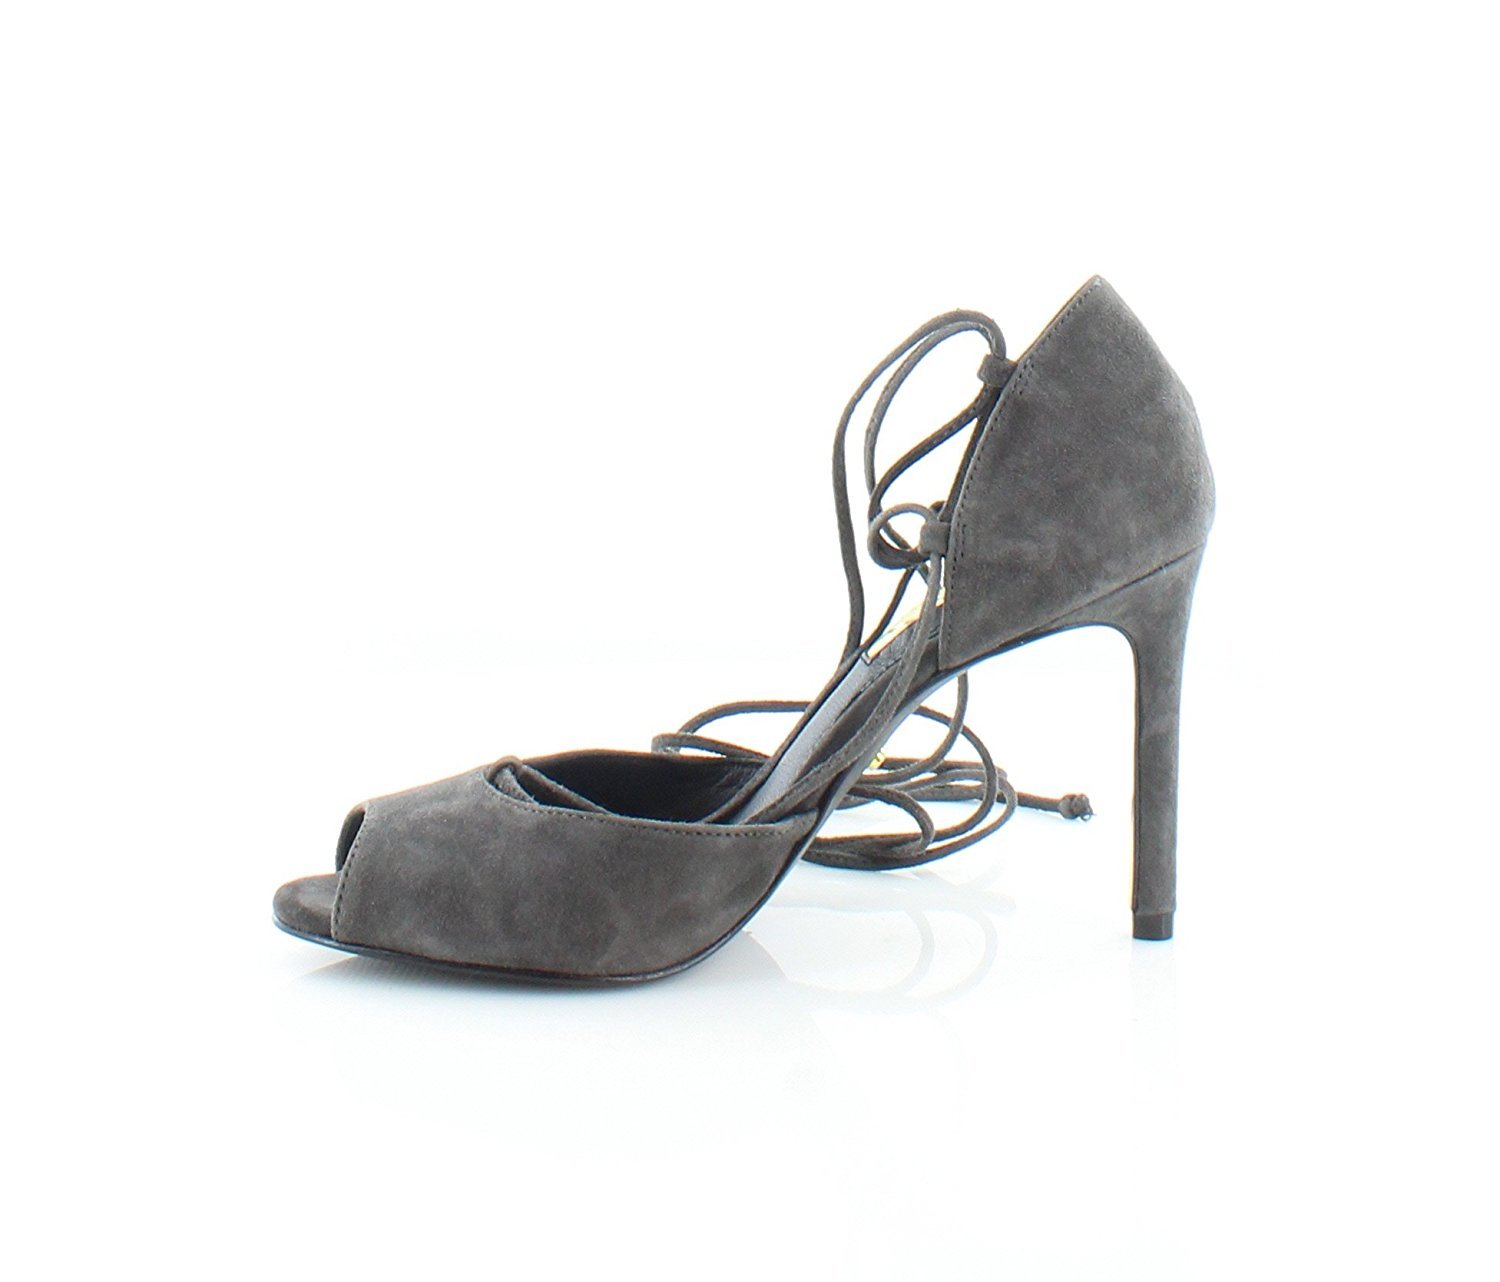 LAUREN by Ralph Lauren Womens Linden Leather Peep Toe Ankle Charcoal Size 11.0